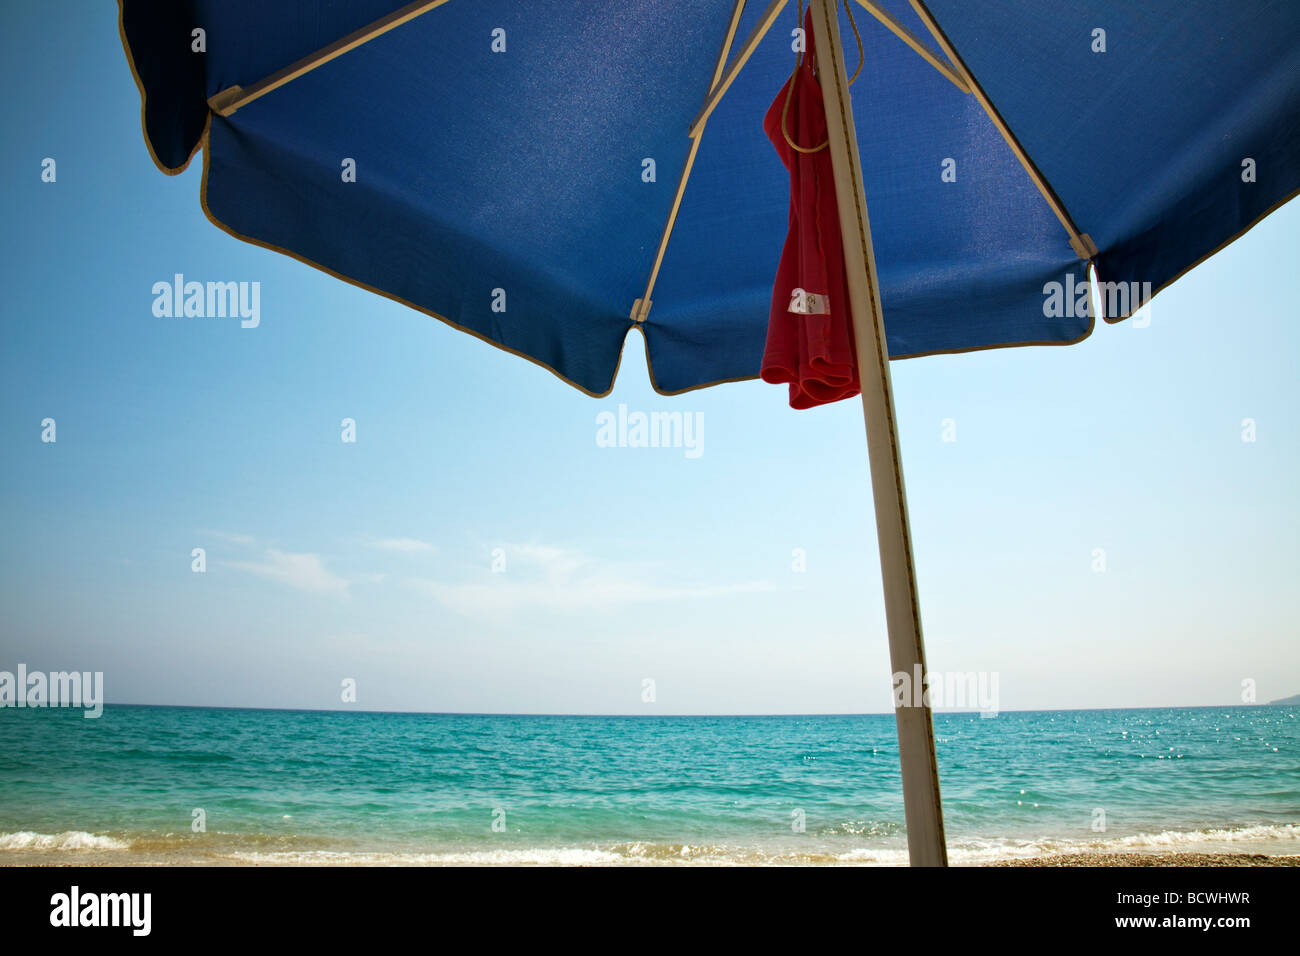 lazy days on a beach in Kefalonia, greek island in the sun, umbrella at the ready, sand, blue sky under parasol - Stock Image